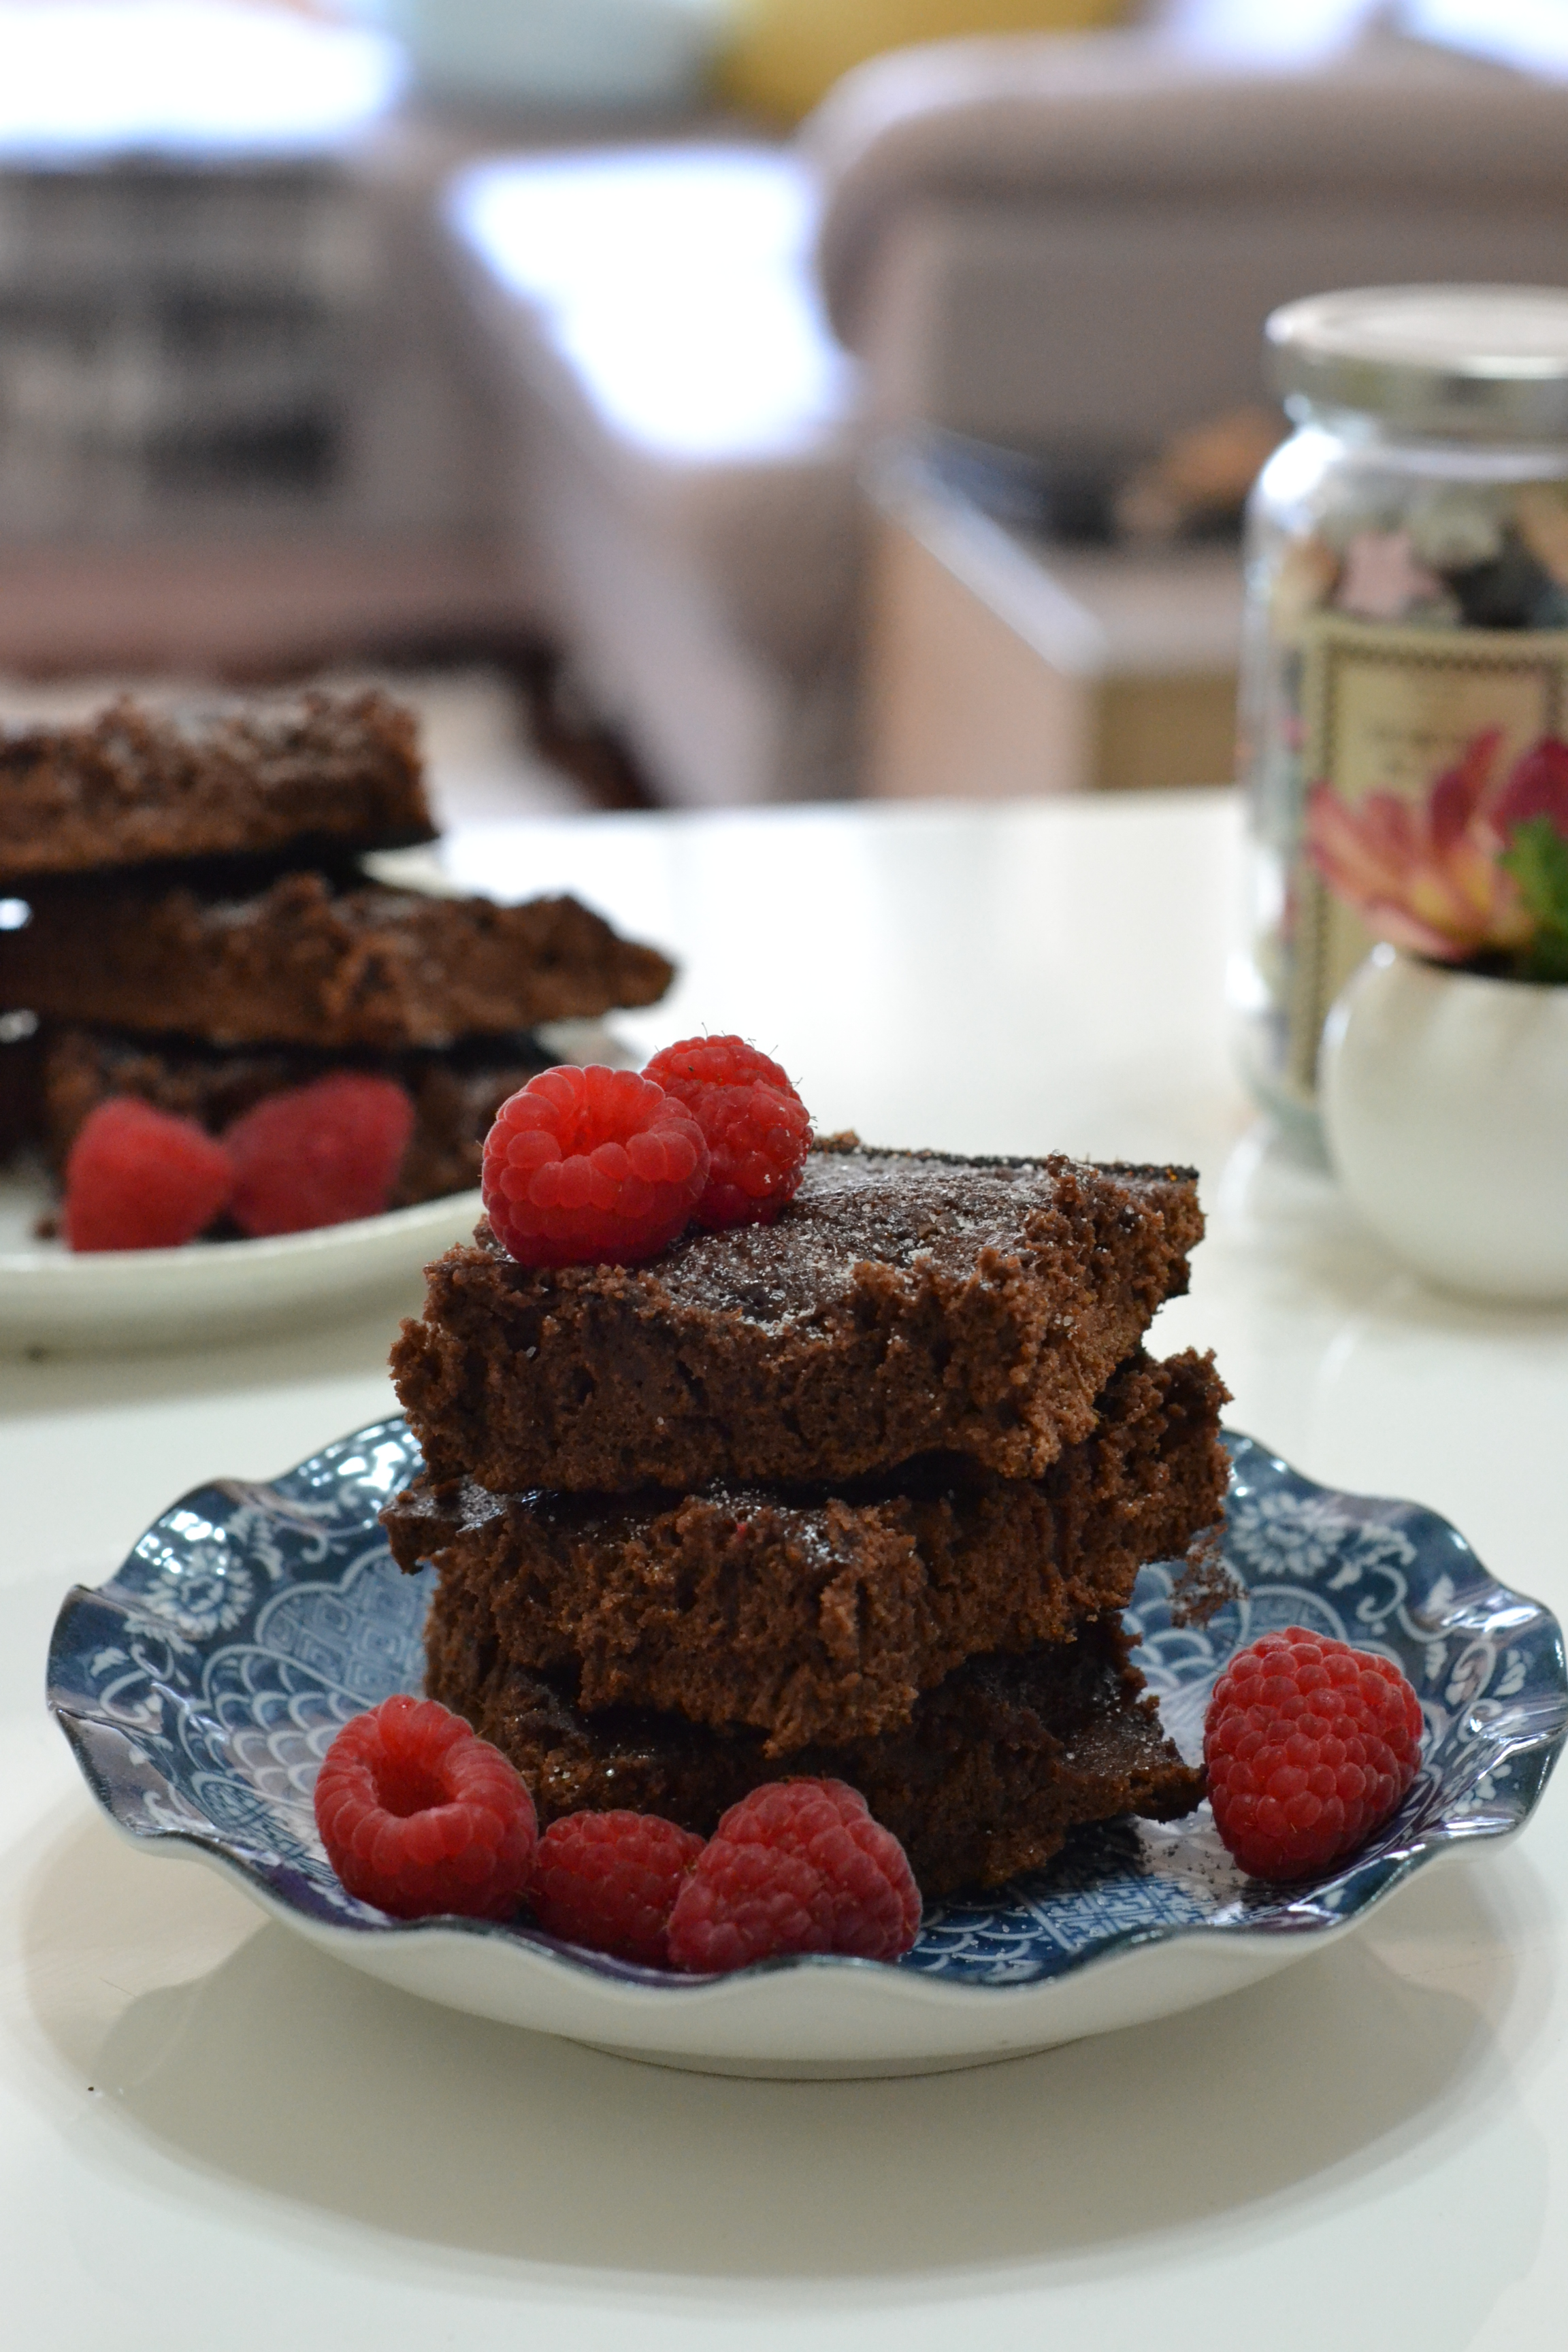 Daisybutter - Hong Kong Lifestyle and Fashion Blog: brownies recipe